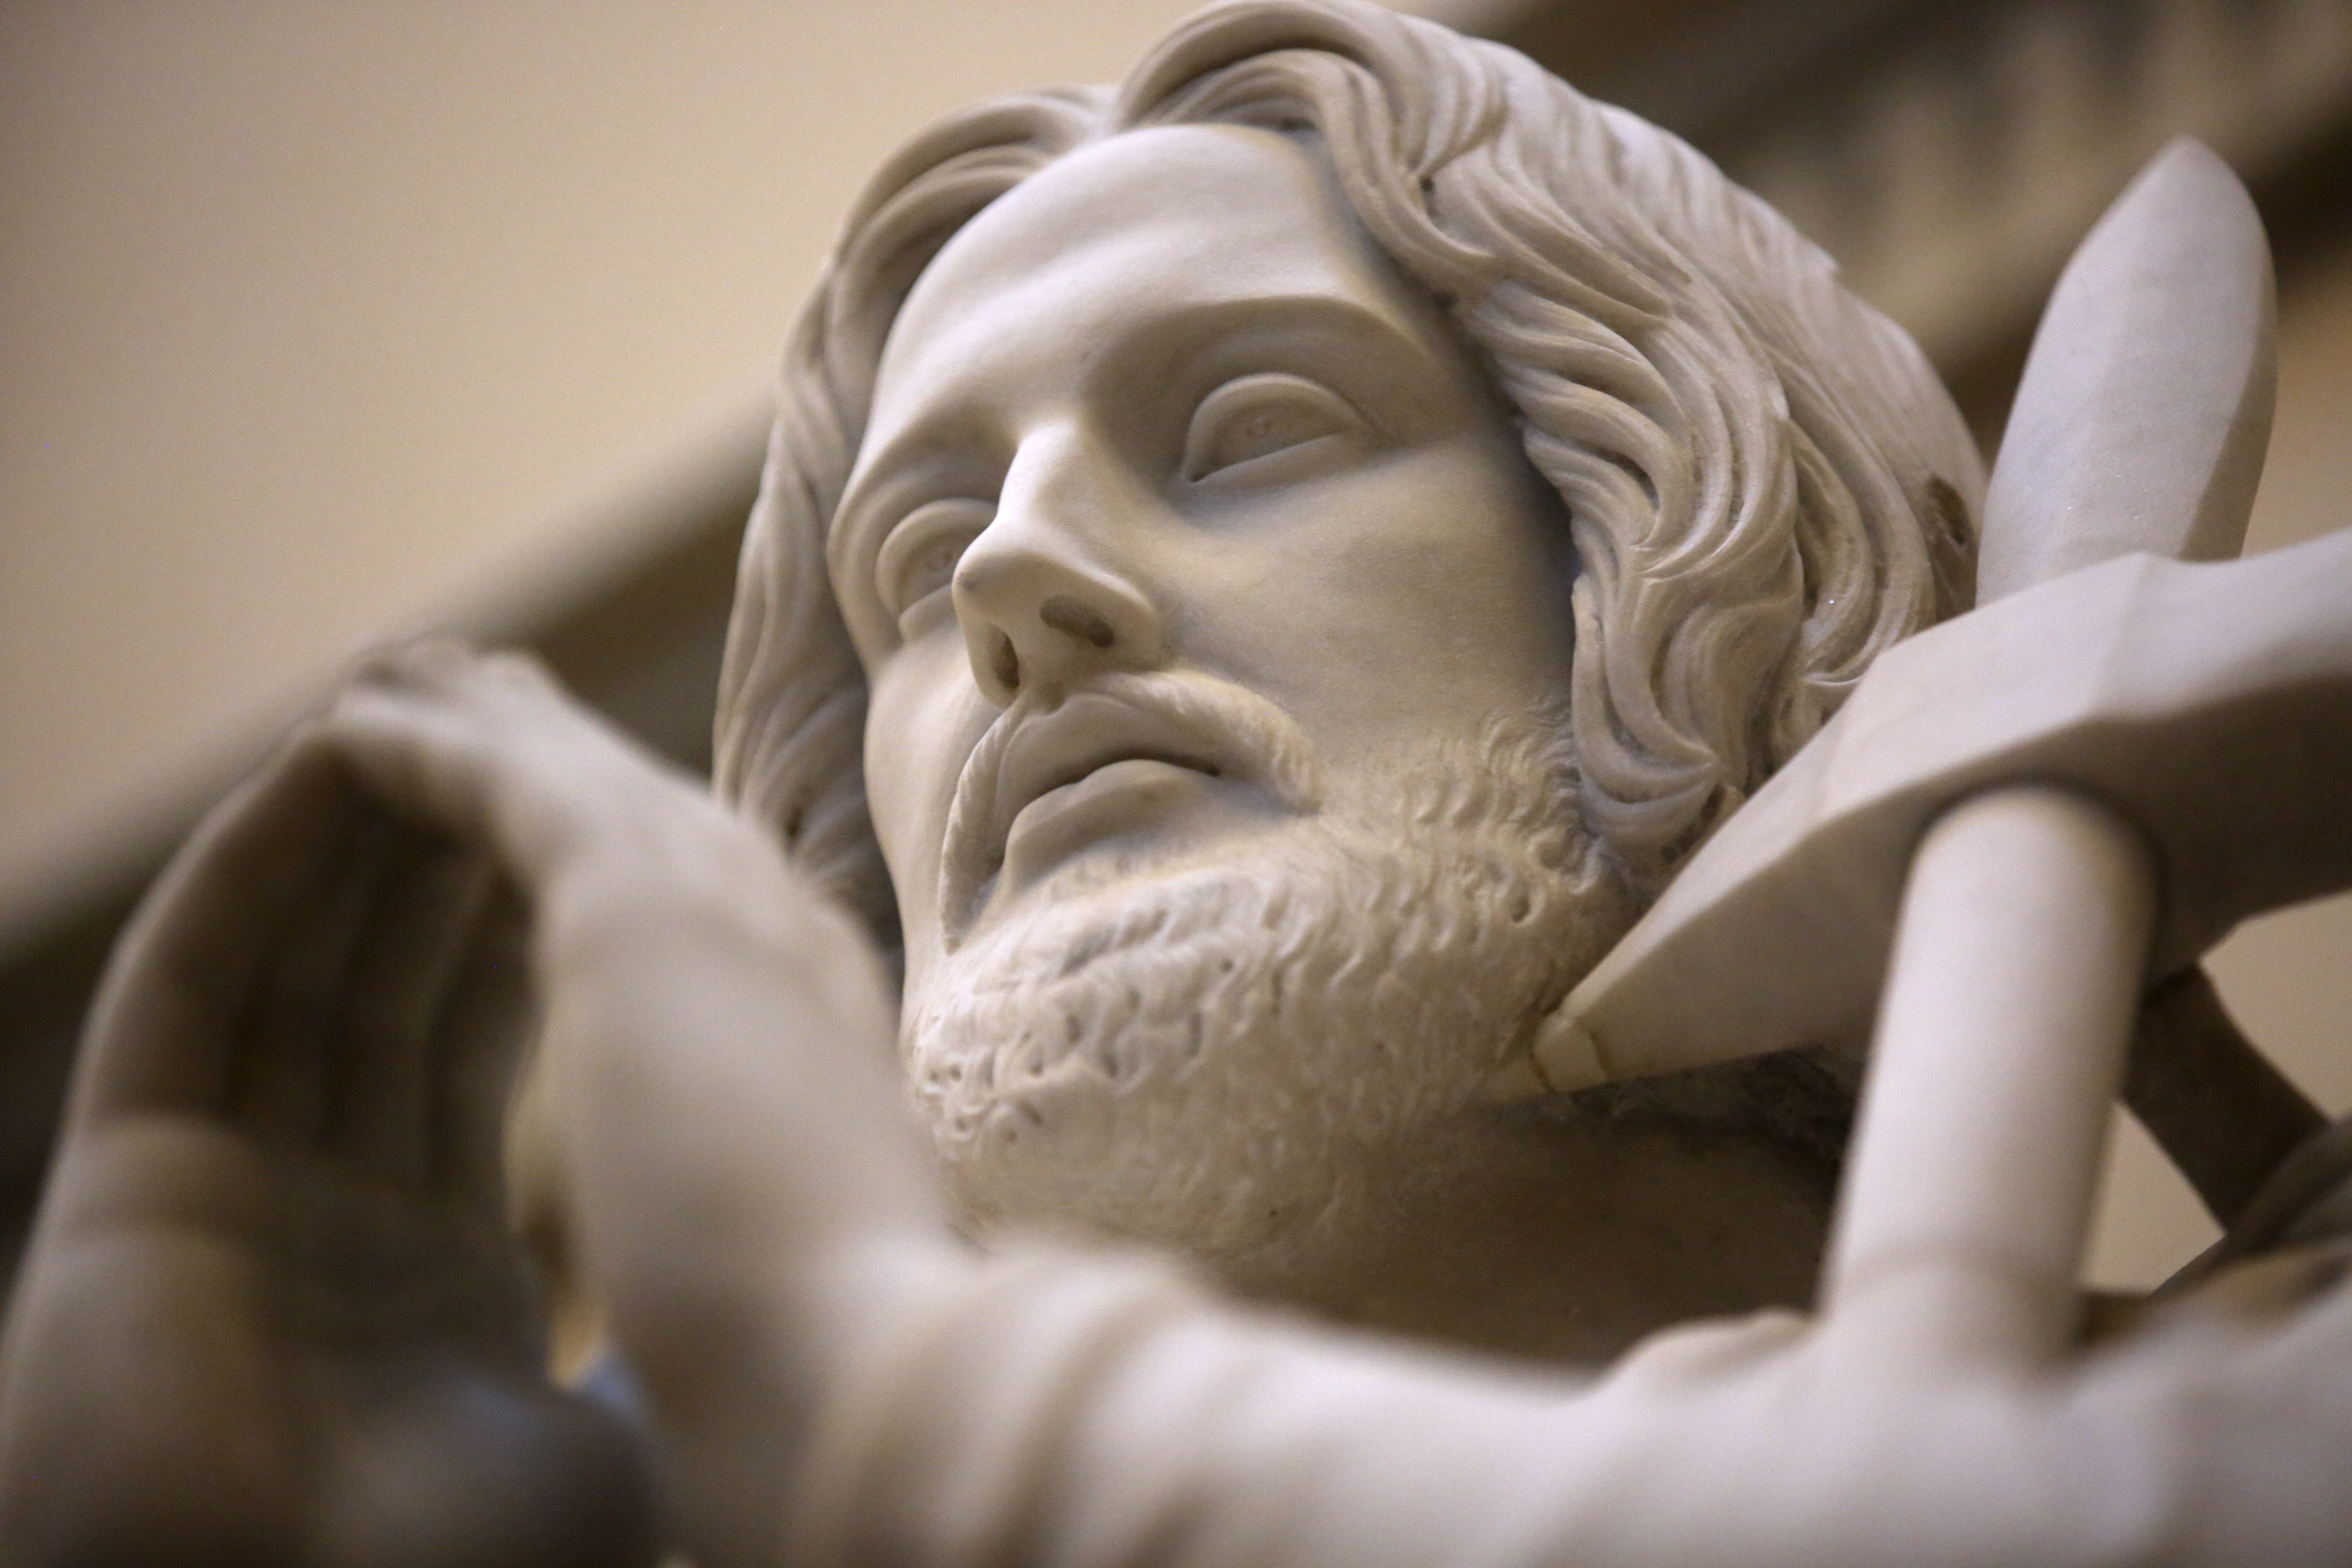 Judas Thaddeus, one of the 12 apostle statues by Danish sculptor Bertel Thorvaldsen, holds a halberd as a symbol of his martyrdom, at the Church of Our Lady in Copenhagen, Denmark, on Tuesday, Nov. 13, 2018. The statues were carved out of Carrara marble between 1829 and 1848. Replicas of the statues are now on display in the Rome Temple Visitors' Center in Italy.